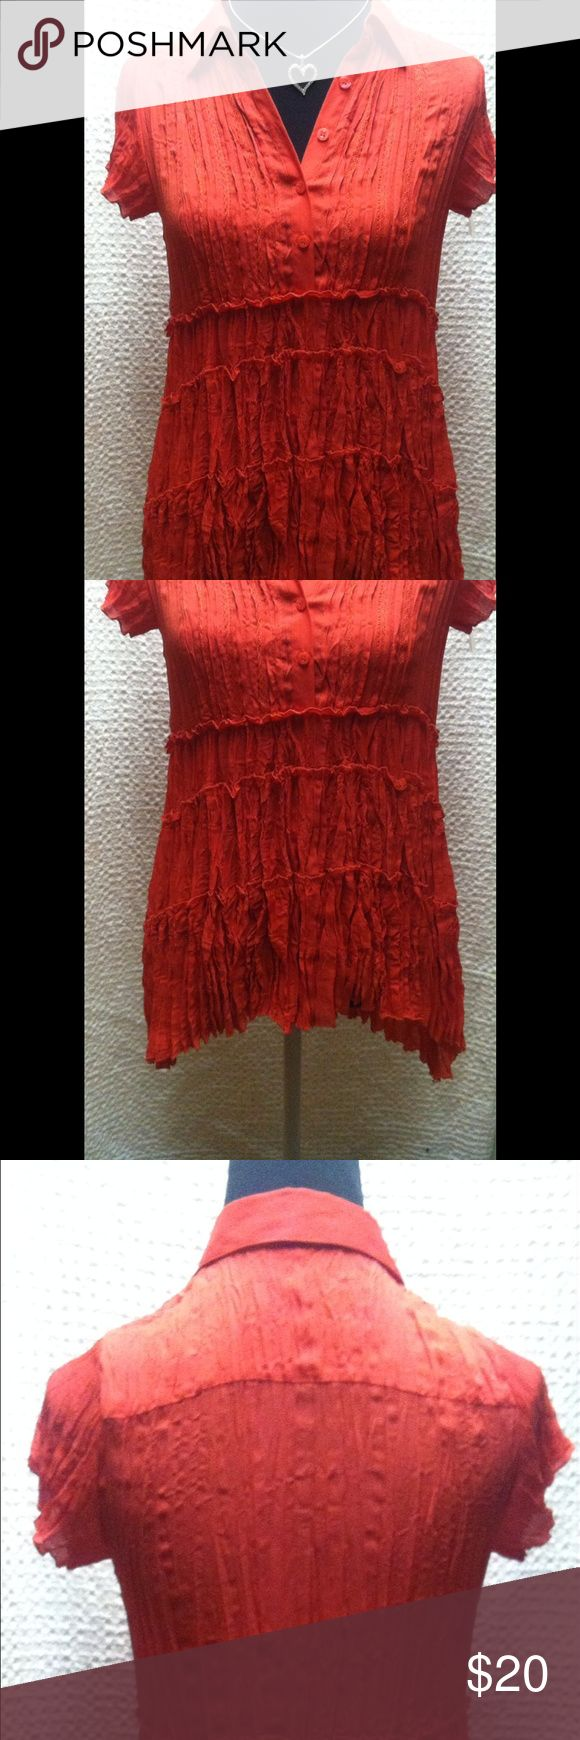 1D: NWOT NY COLLECTION ORANGE BLOUSE Orange collared blouse, ruffles going down the back and front. Great formal or casual wear! NY Collection Tops Button Down Shirts